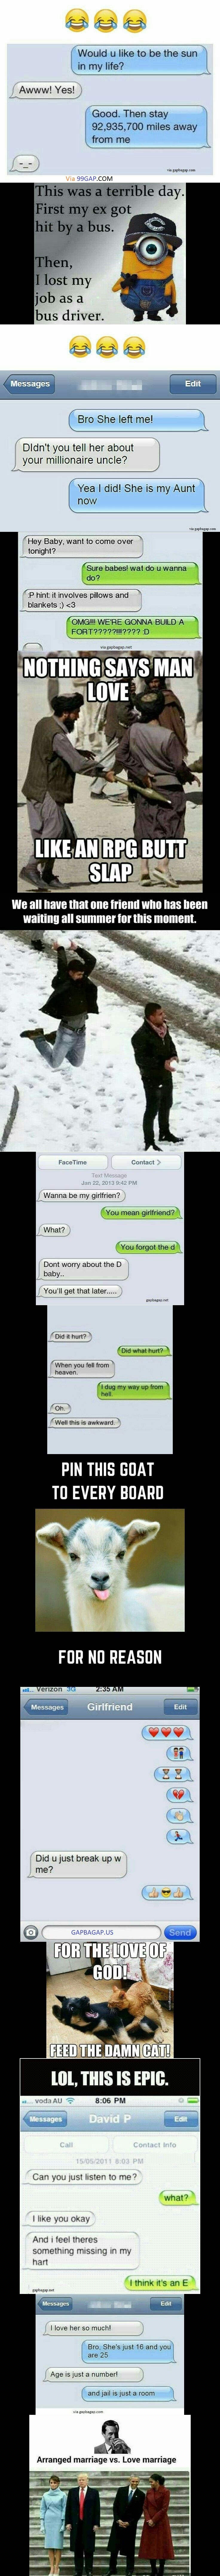 #FunnyTexts And #FunnyMemes About Exes